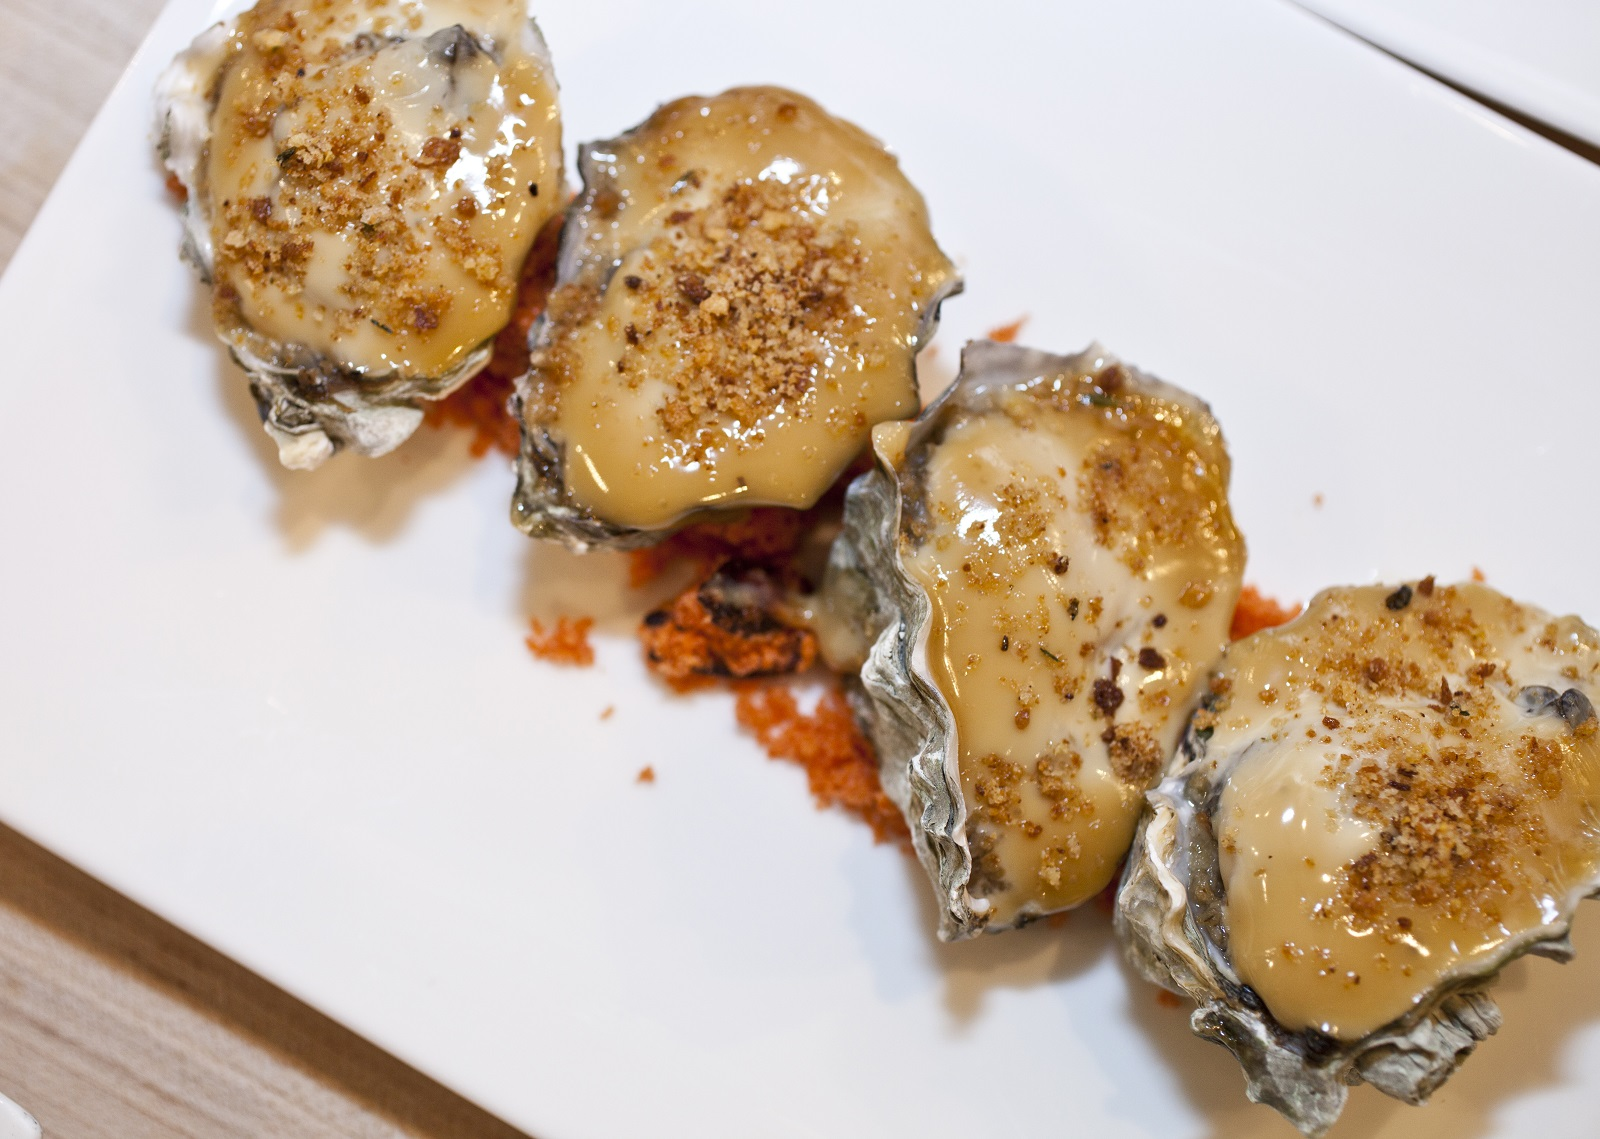 Marmite baked oysters by Chef Steve Gedra at the James Beard House. (Rina Oh/James Beard House)